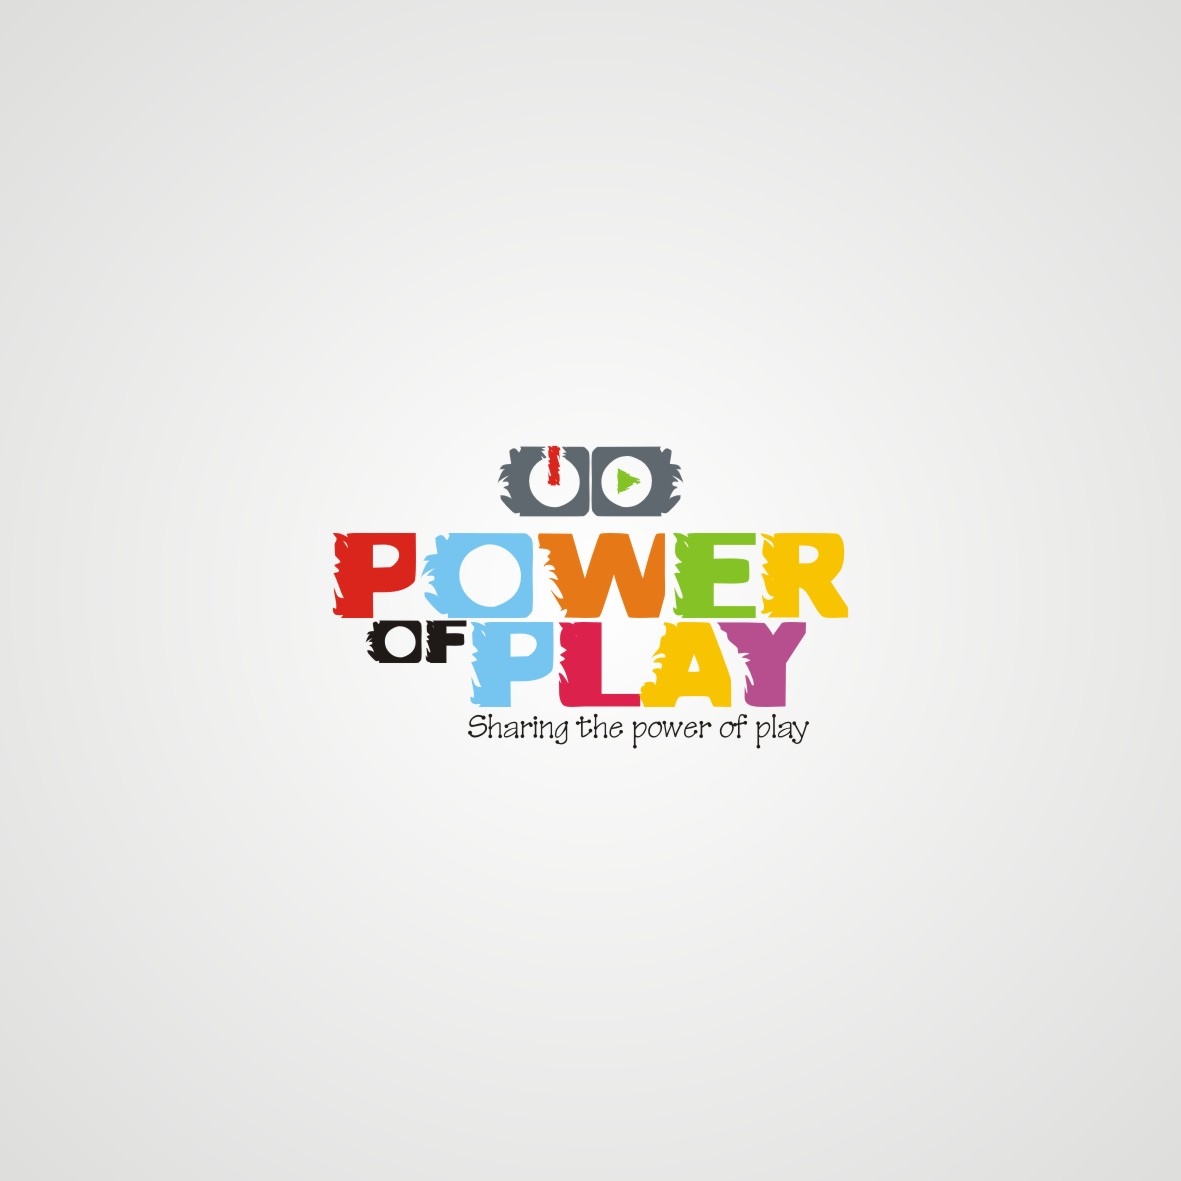 Logo Design by arteo_design - Entry No. 77 in the Logo Design Contest Power Of Play Logo Design.